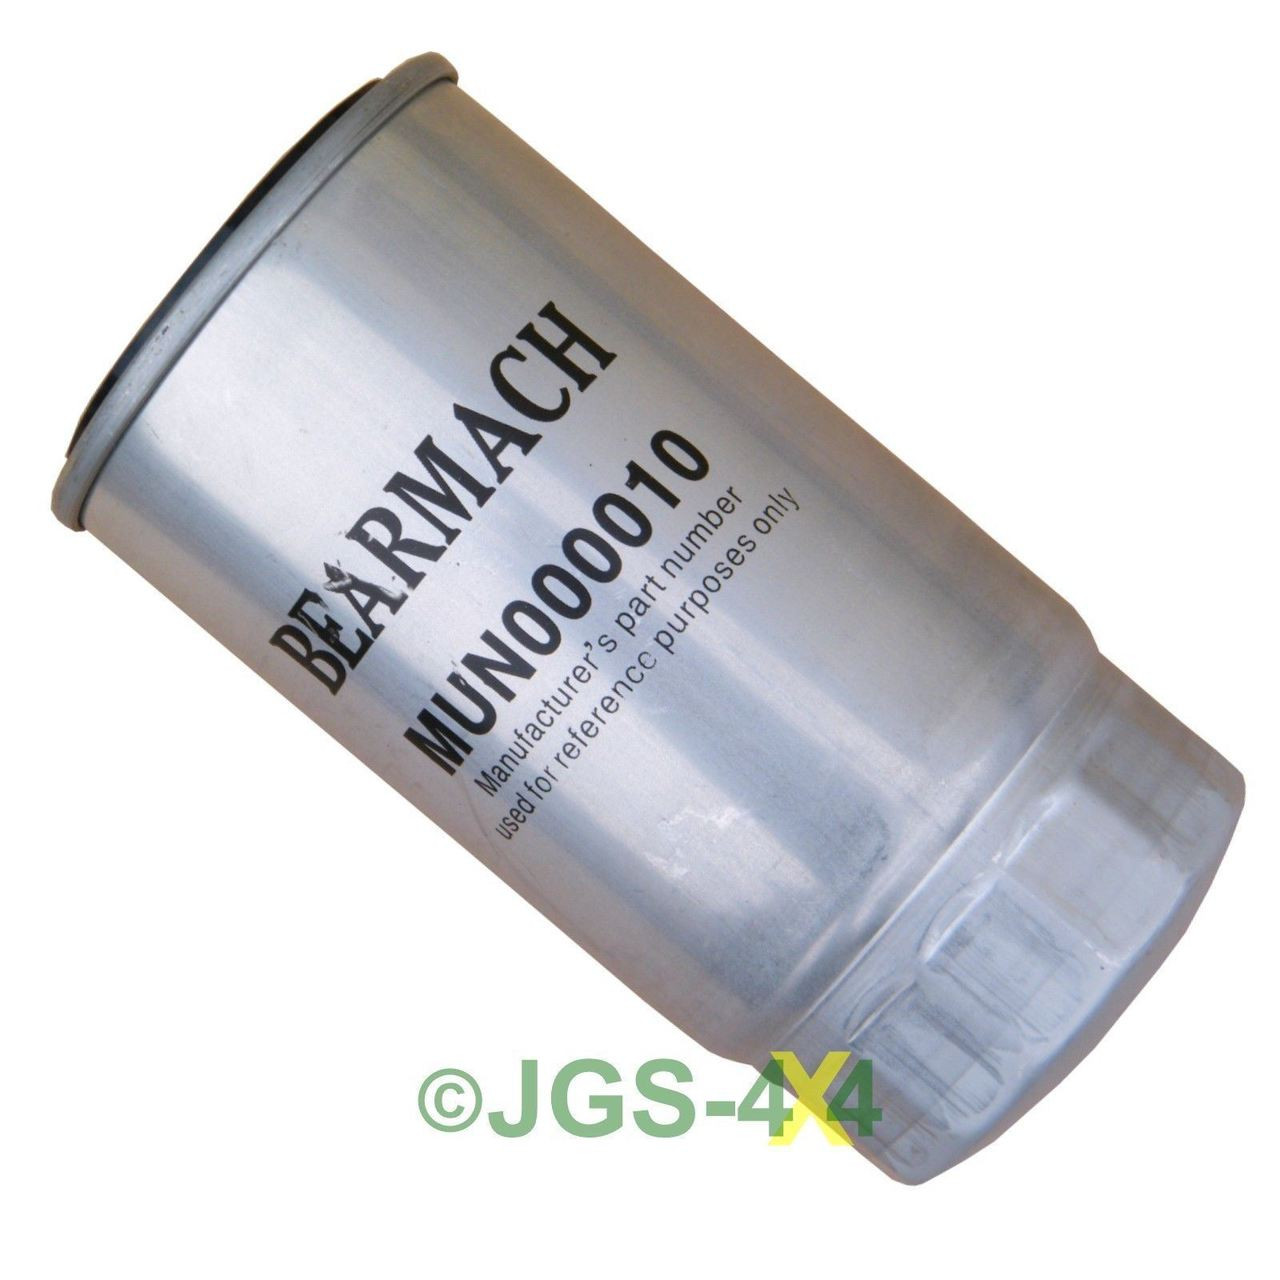 medium resolution of jgs4x4 land rover freelander 1 diesel fuel filter 2 0 td4 bmw engine mun000010